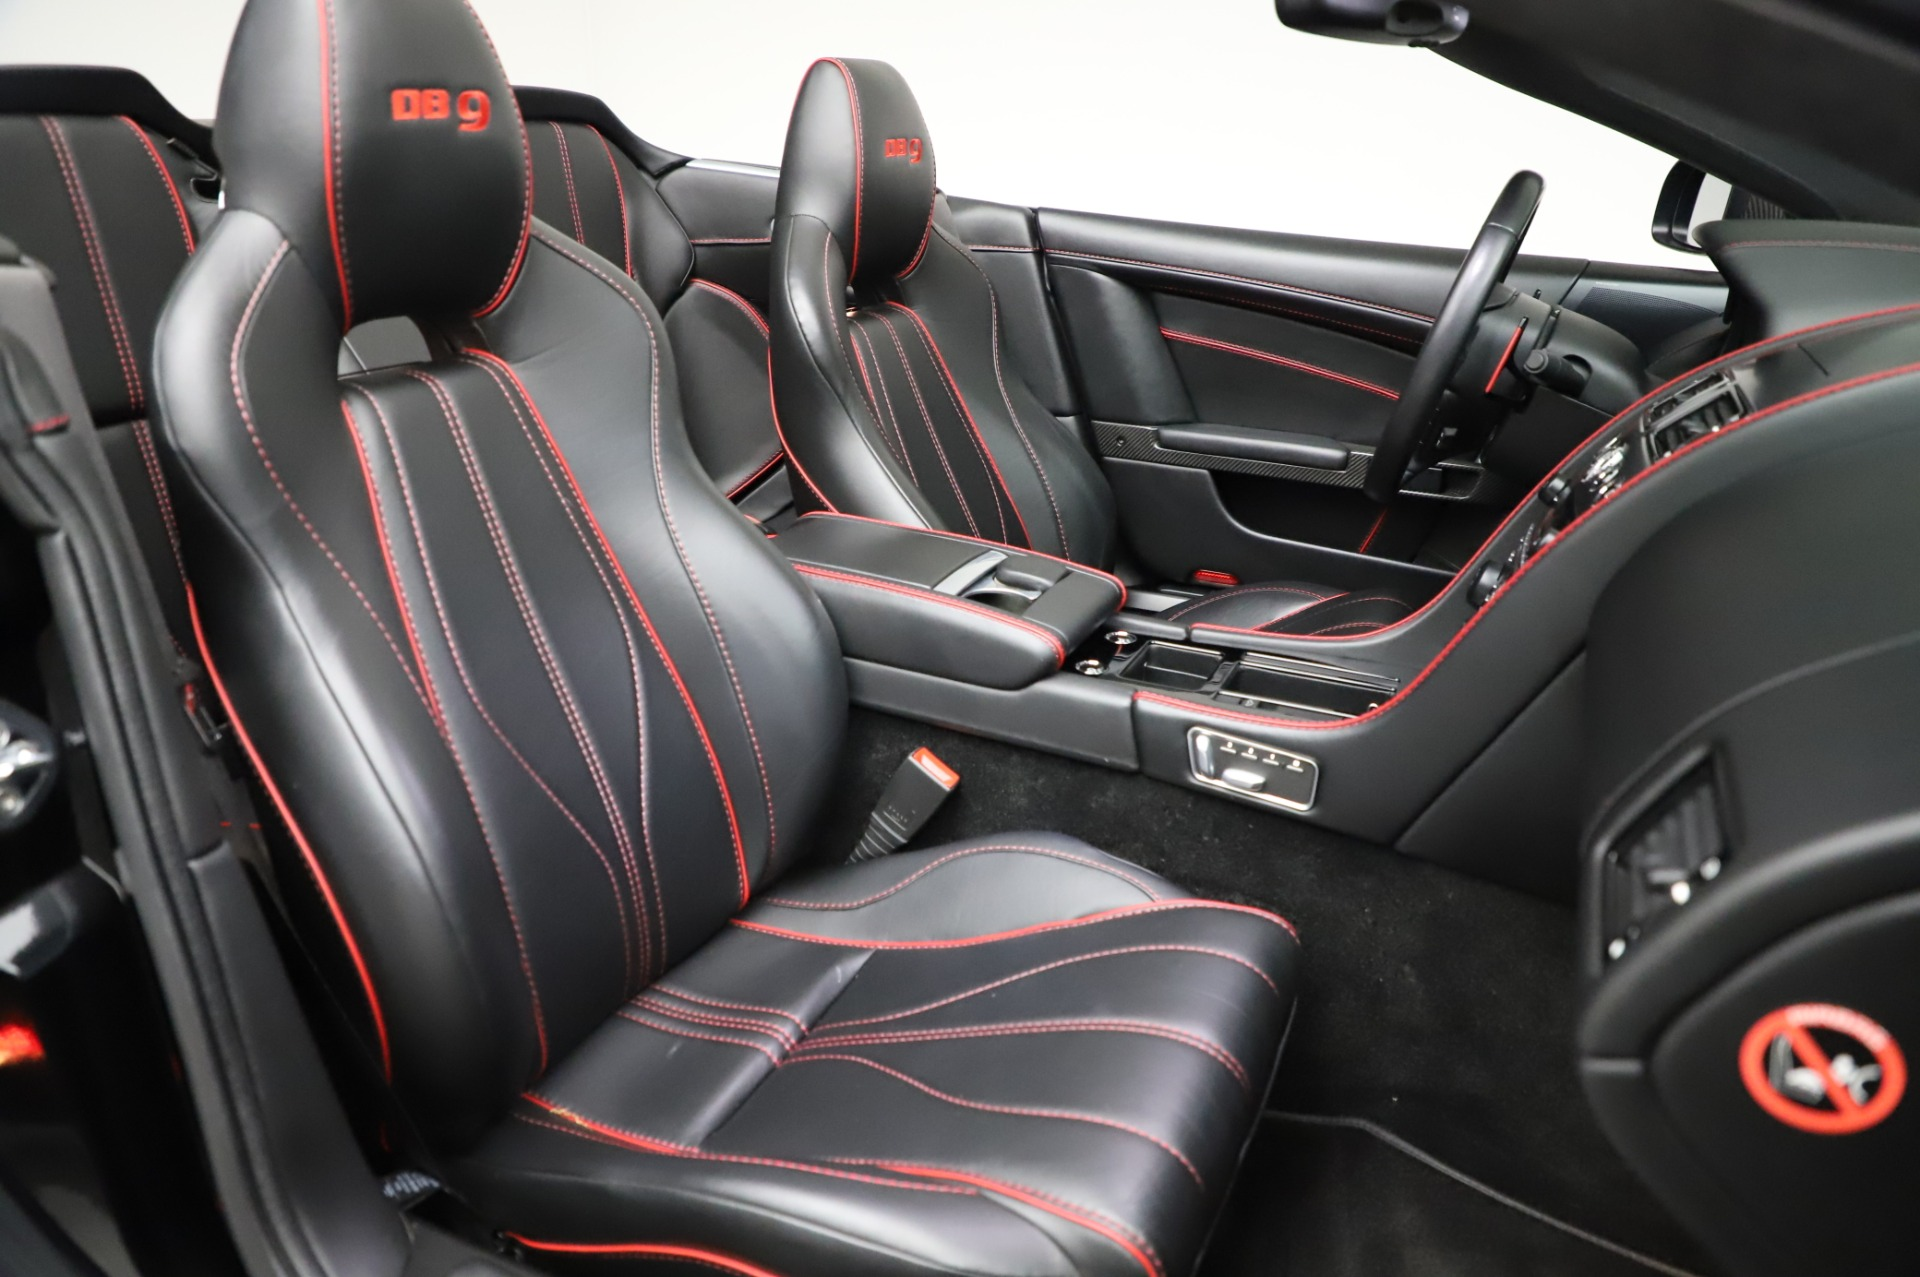 Used 2015 Aston Martin DB9 Carbon Edition Volante For Sale In Westport, CT 1919_p25